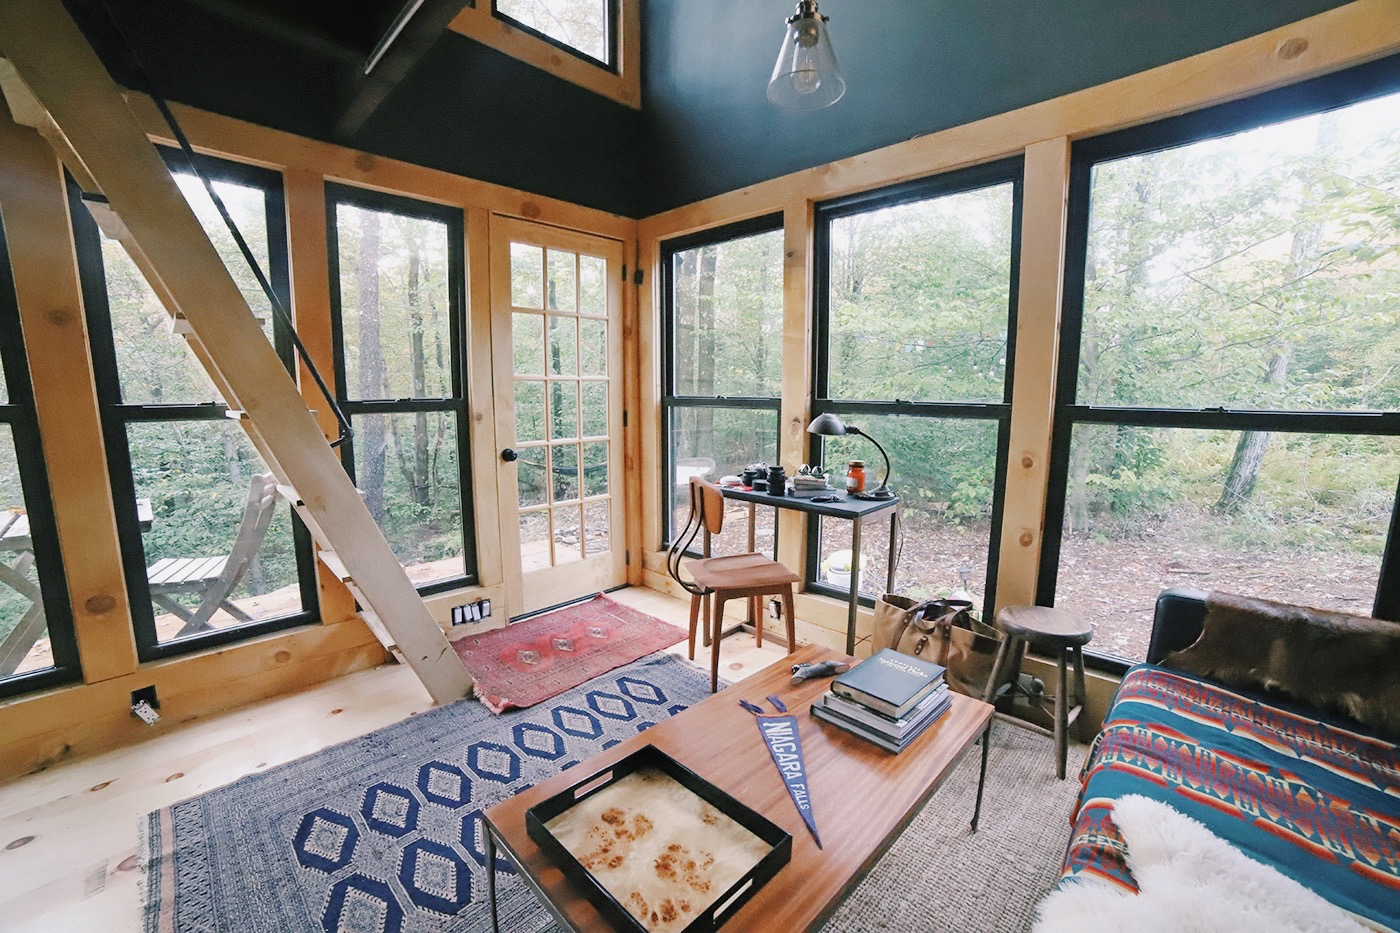 MODEL-T Cabin - Micro Cabin in the Catskill Mountains of NY